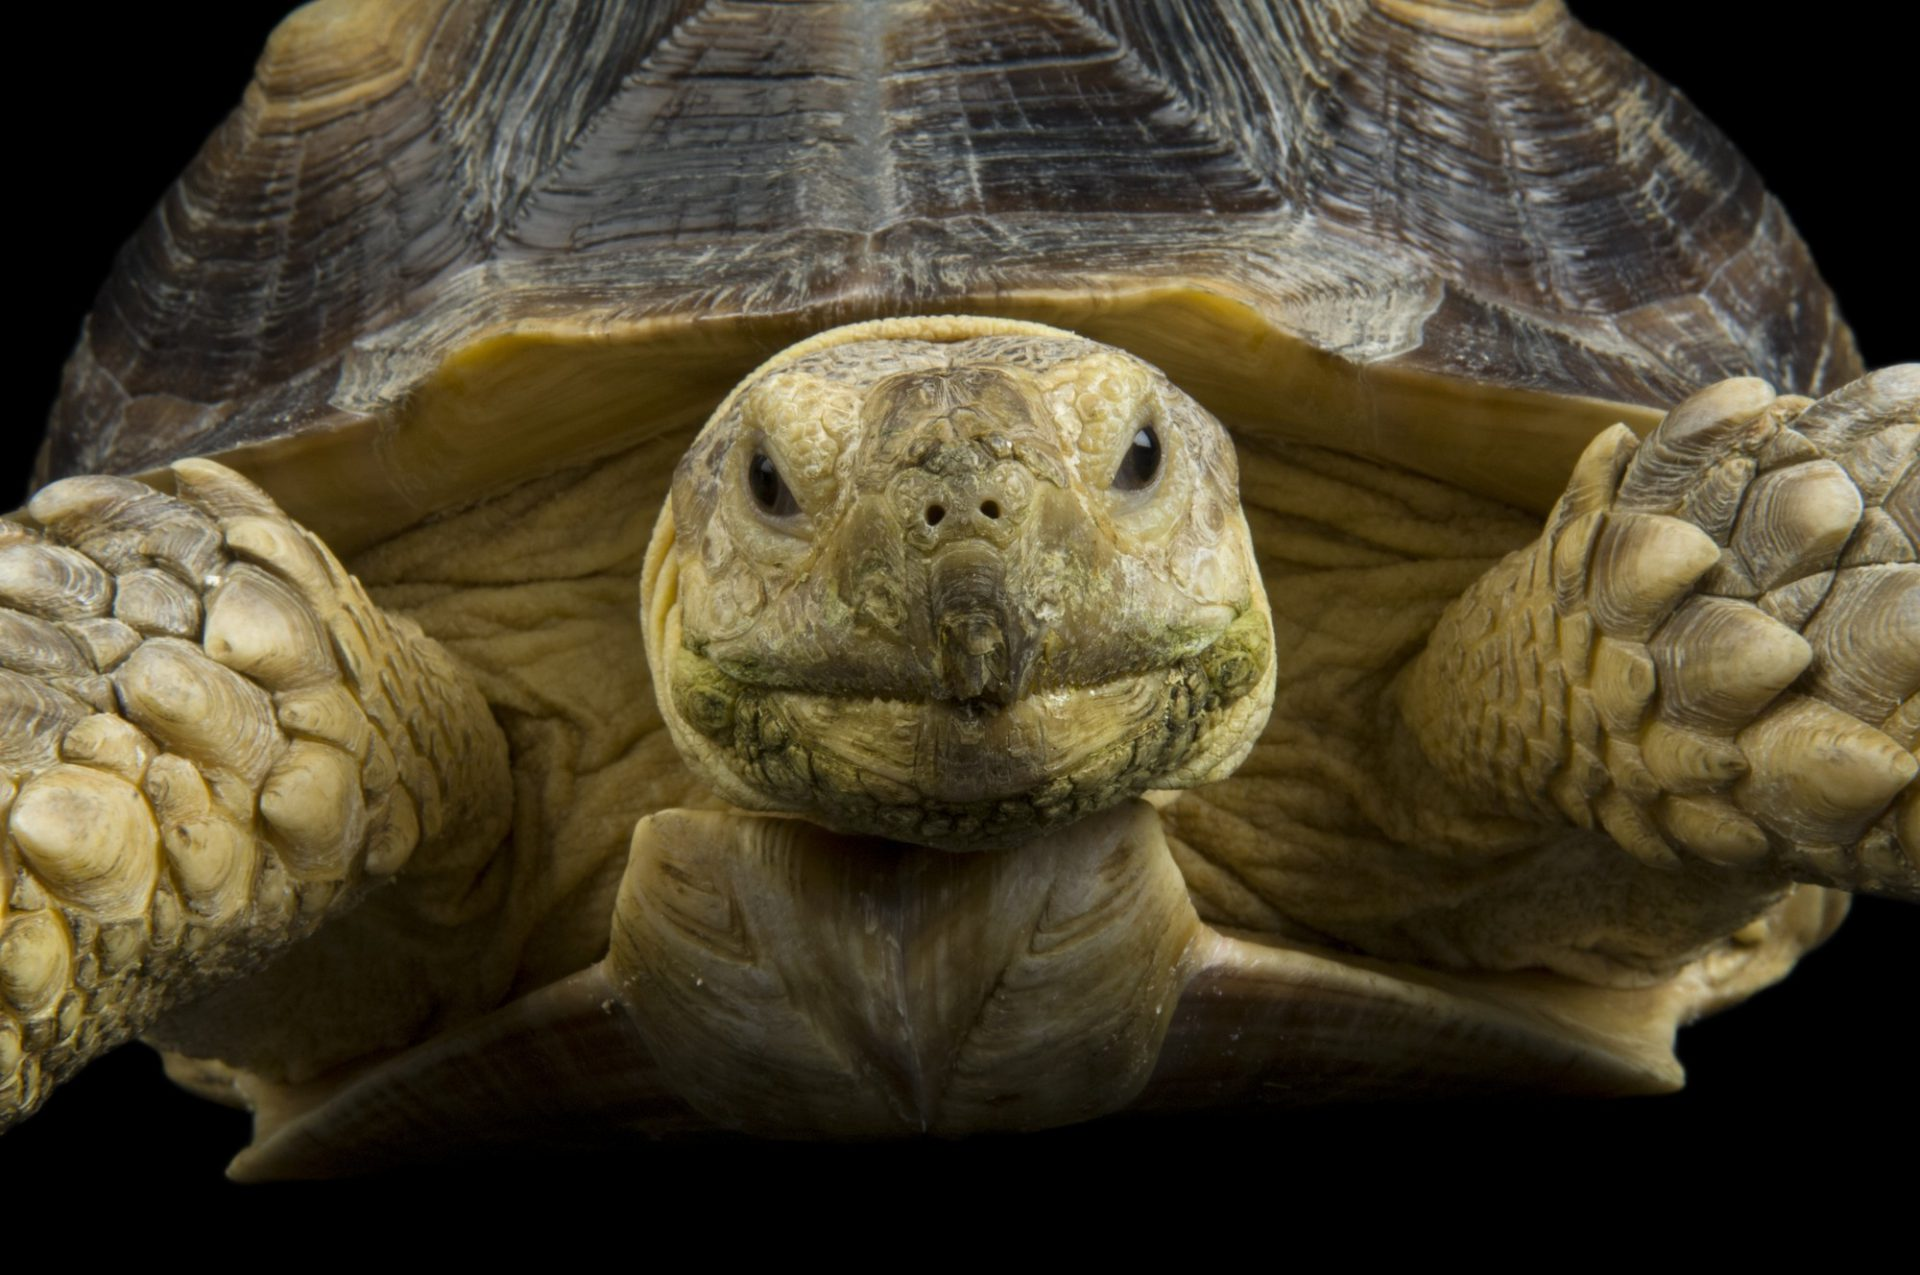 Photo: African spurred tortoise (Geochelone sulcata) at the Denver Zoo.